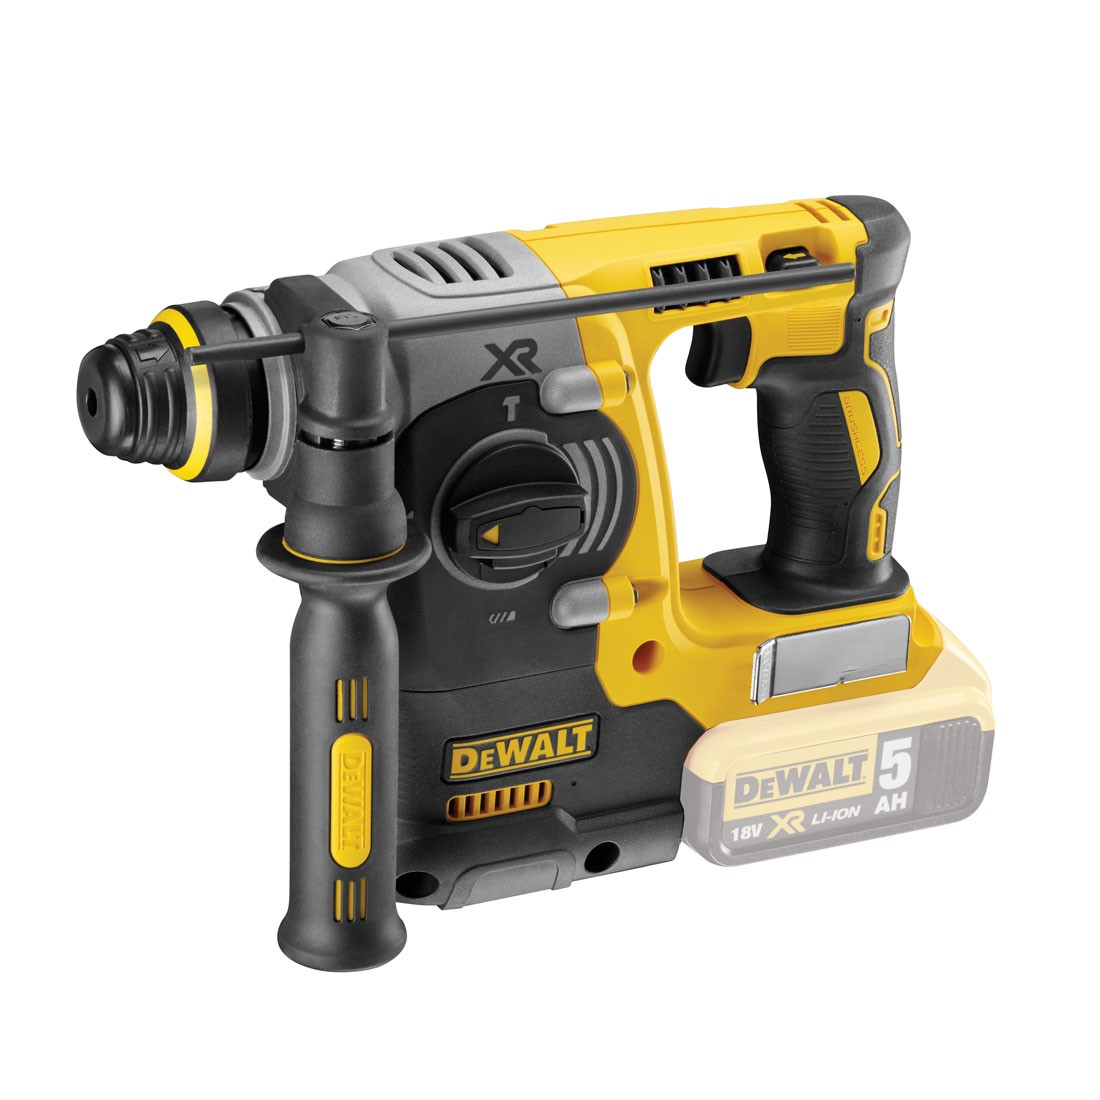 DeWalt DCH273N SDS+ Plus Brushless Rotary Hammer Drill 18v Body Only